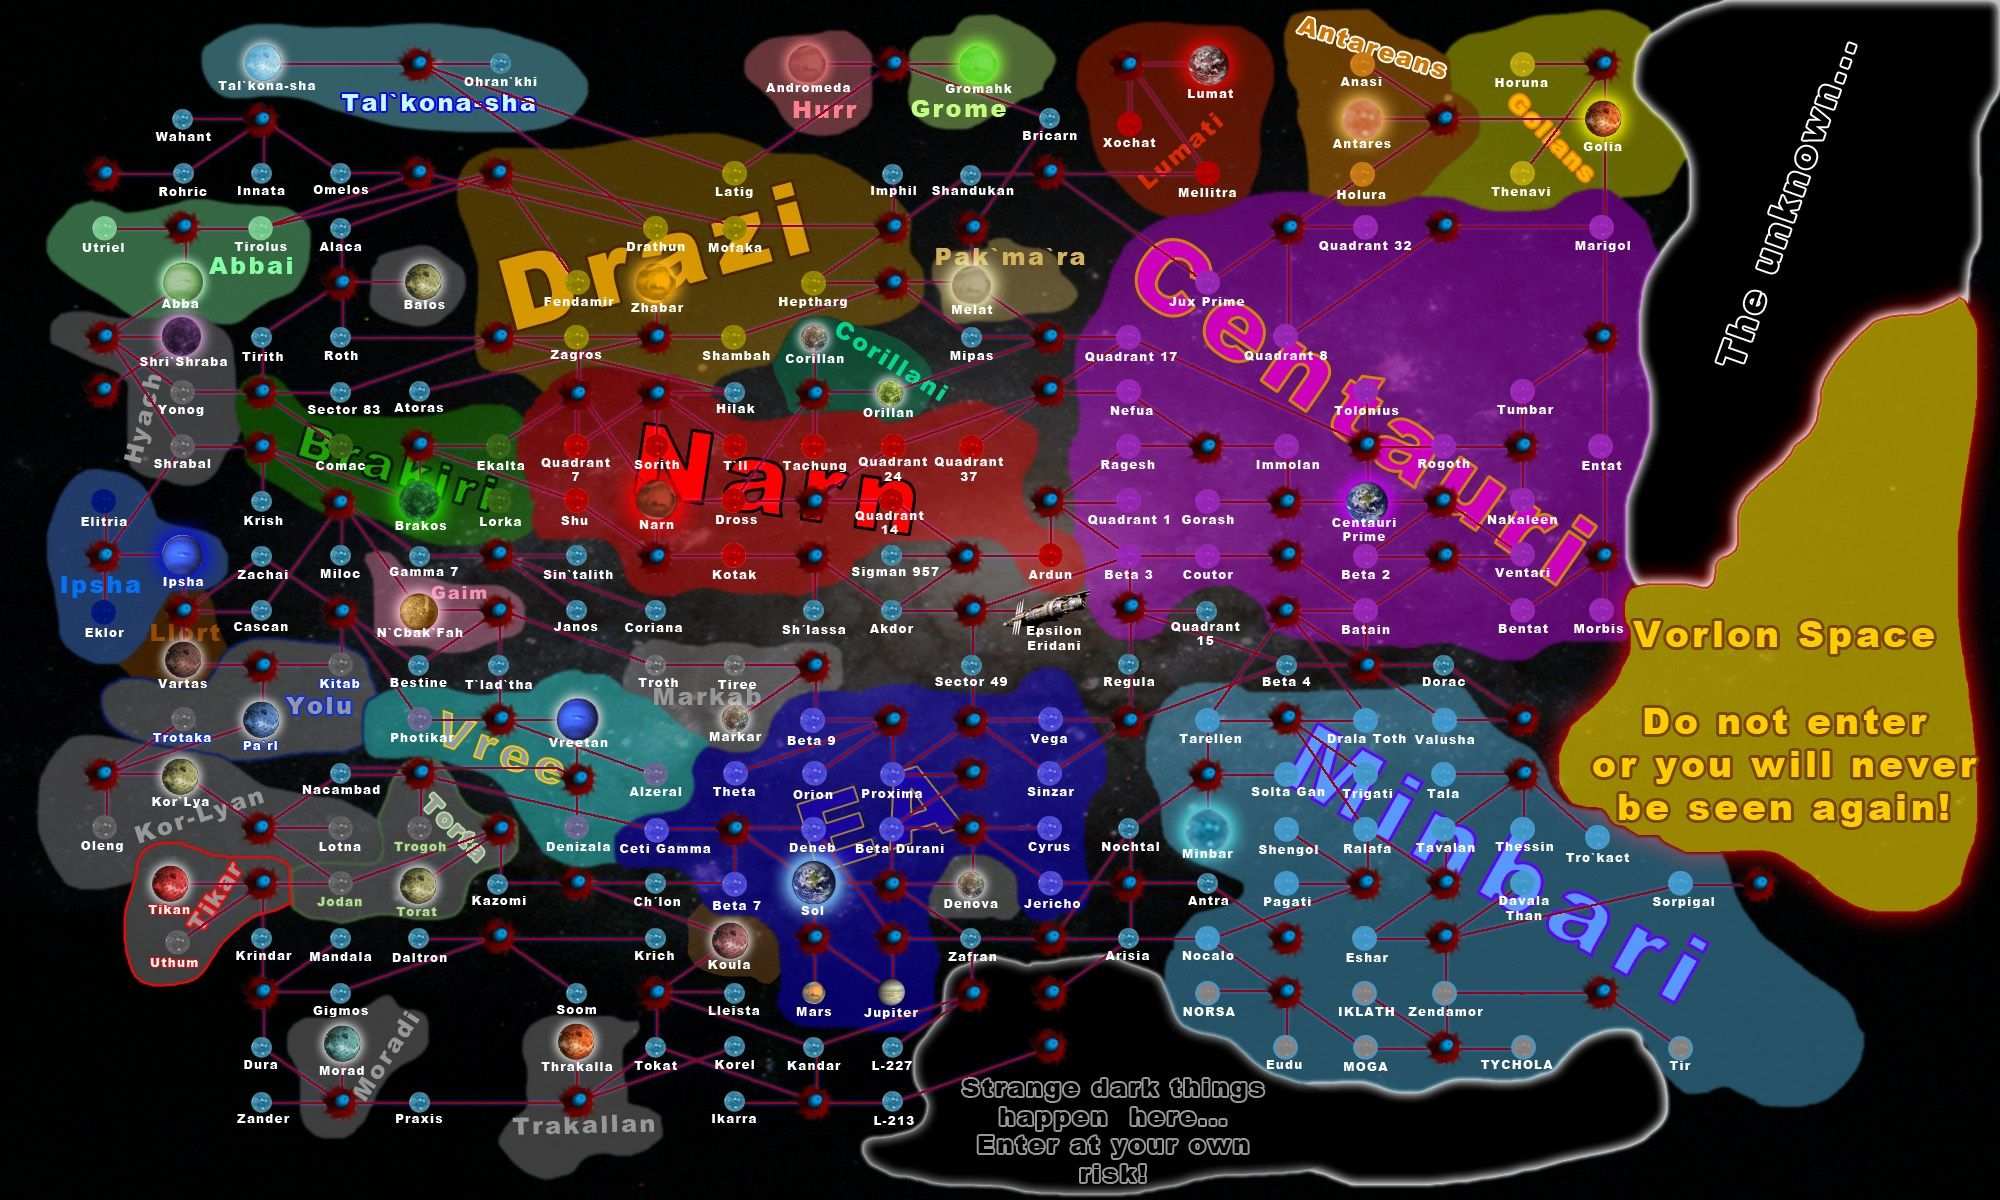 Gallery Scifi Babylon5 Babylon 5 A Dream Given Form Galaxy Map Showcasing Included Races Jpg 2000 1200 Galaxy Map Science Fiction Series Babylon